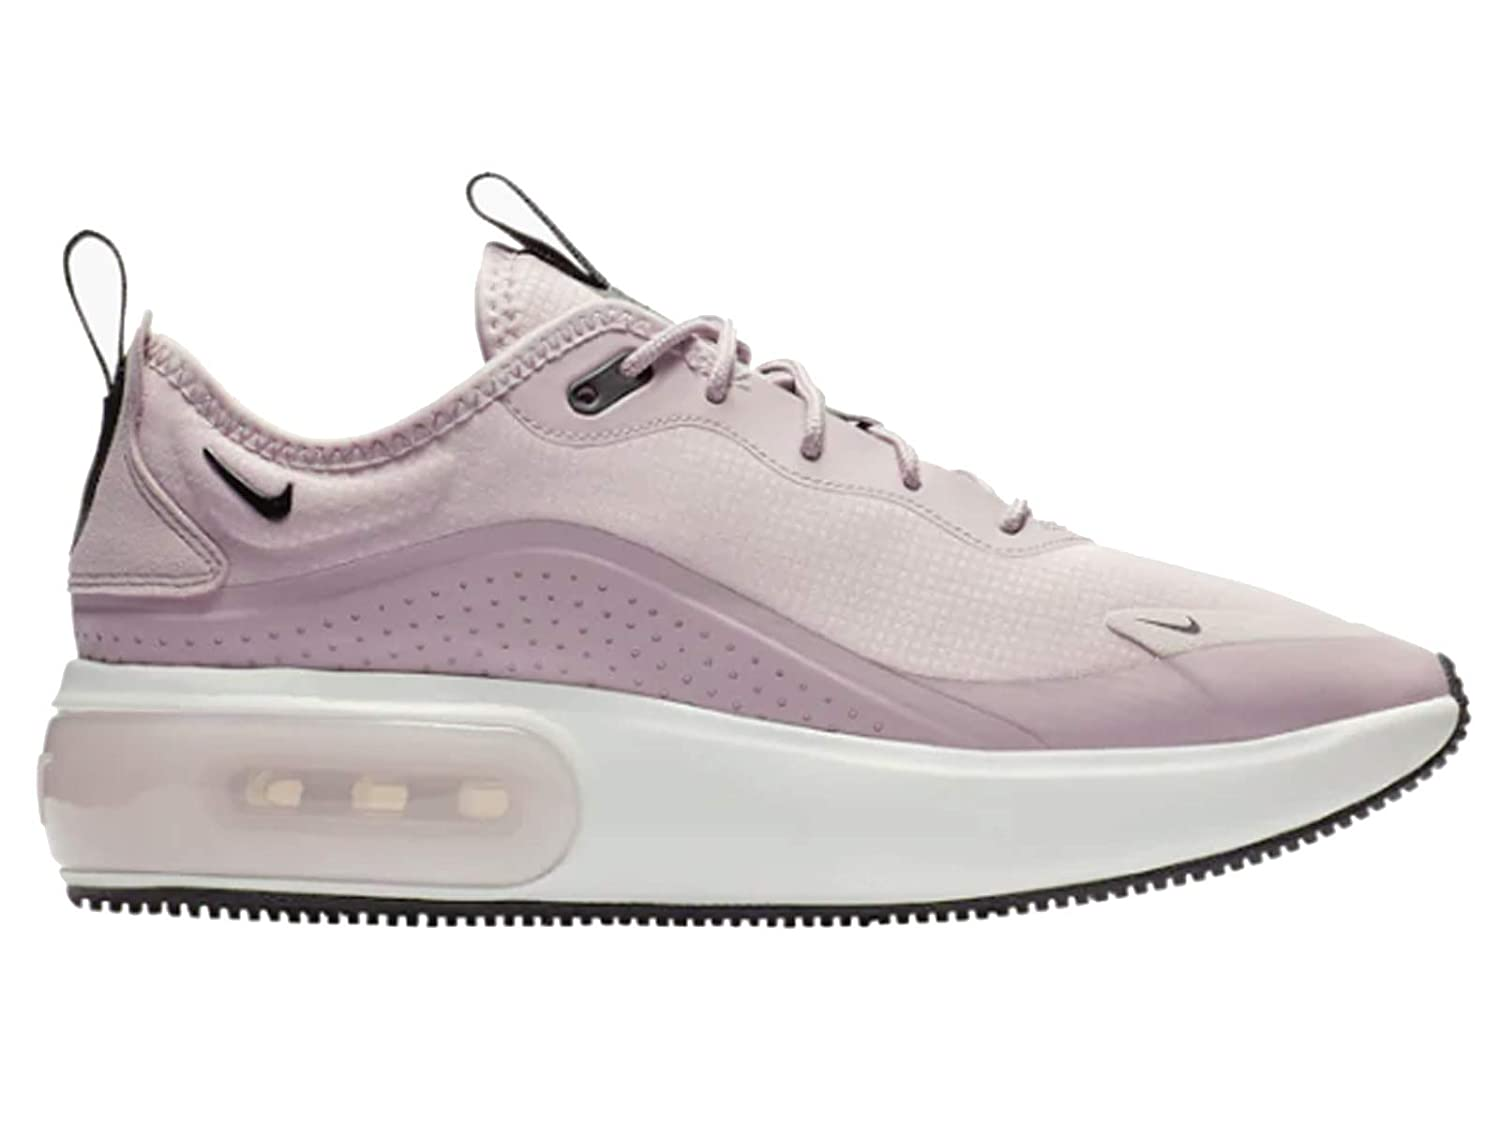 0ead67d1a9 Amazon.com | Nike Women's Air Max Dia Mesh Cross-Trainers Shoes | Shoes